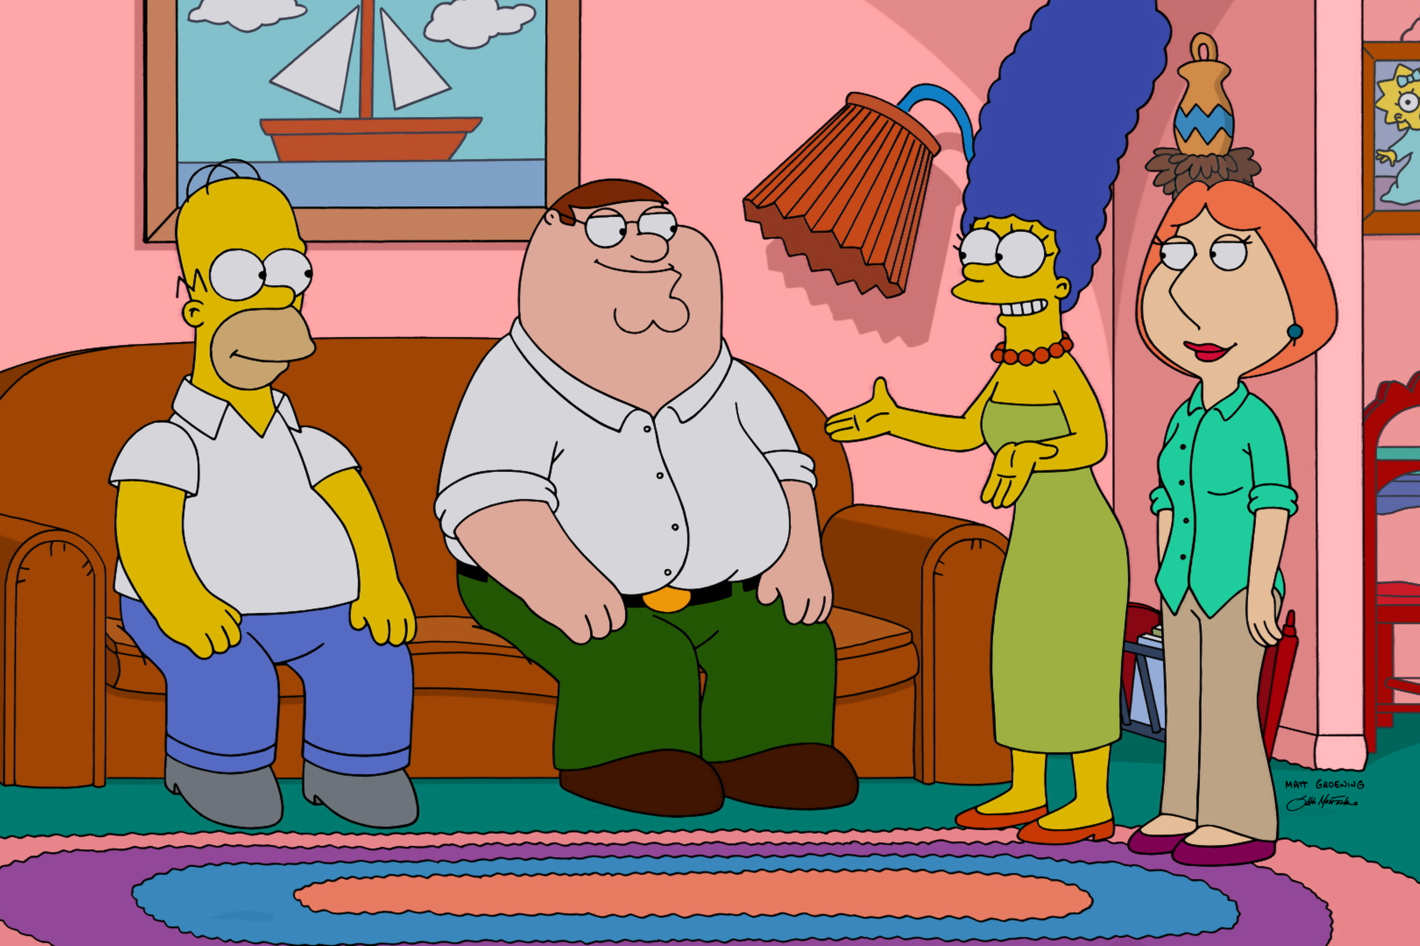 the creators of family guy must have a major inferiority complex